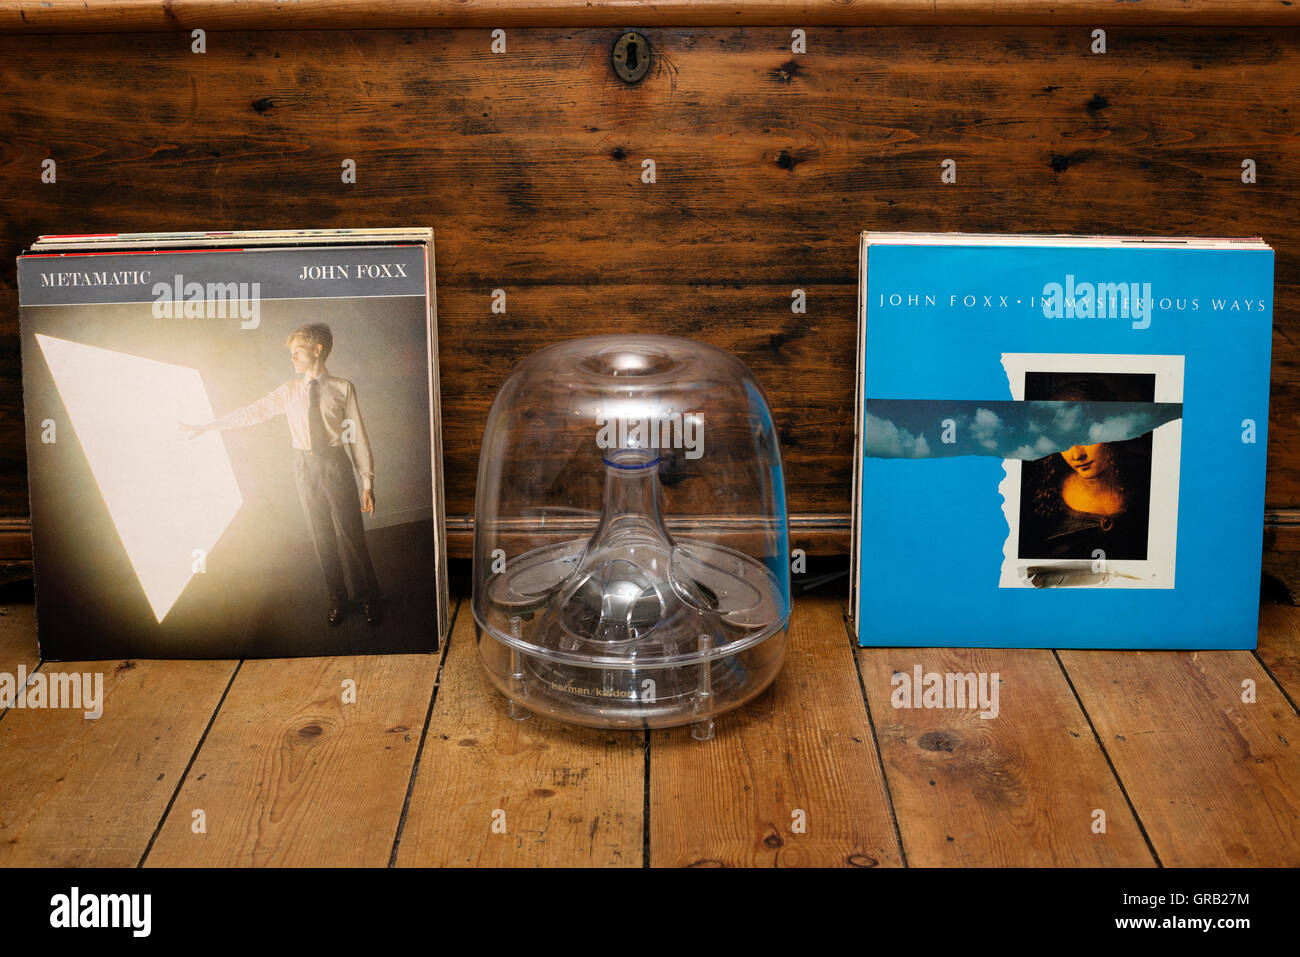 John Foxx Metamatic LP and In Mysterious Ways 12' single records - Stock Image